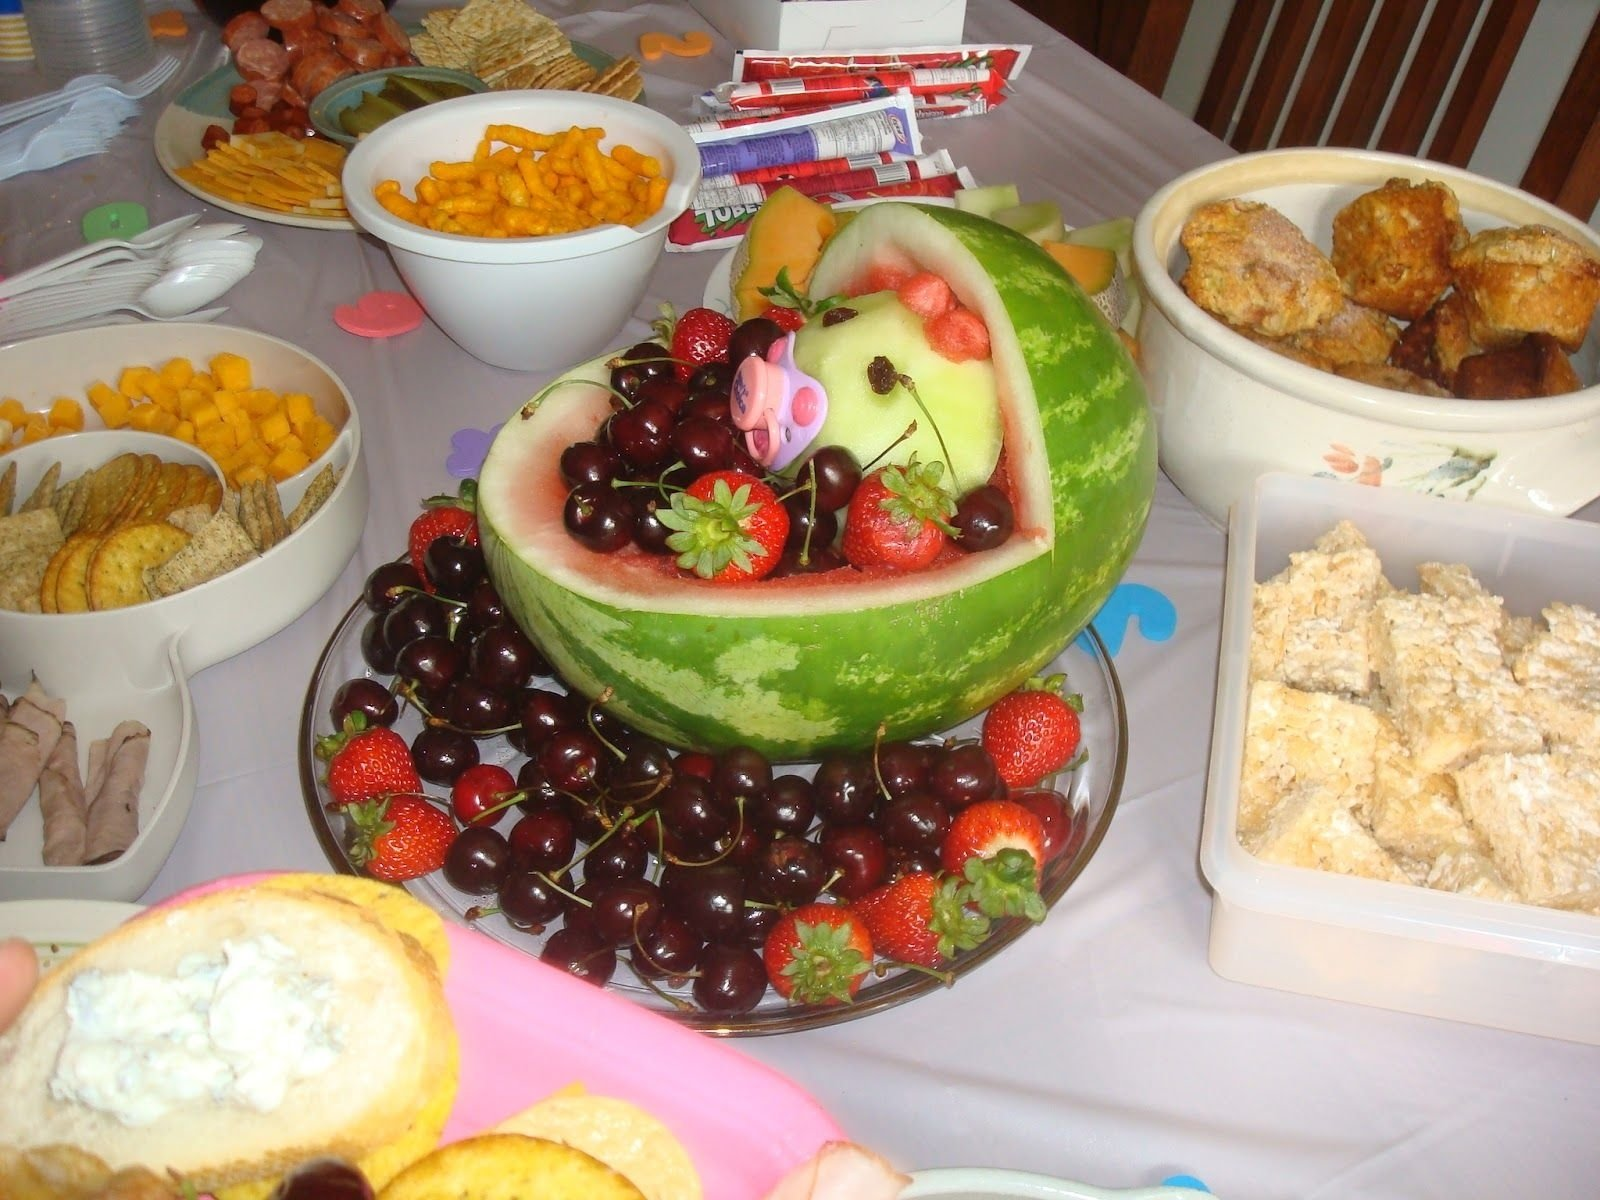 10 Perfect Baby Shower Food Ideas Pinterest finger food ideas for a baby shower photo 5 baby shower 2021